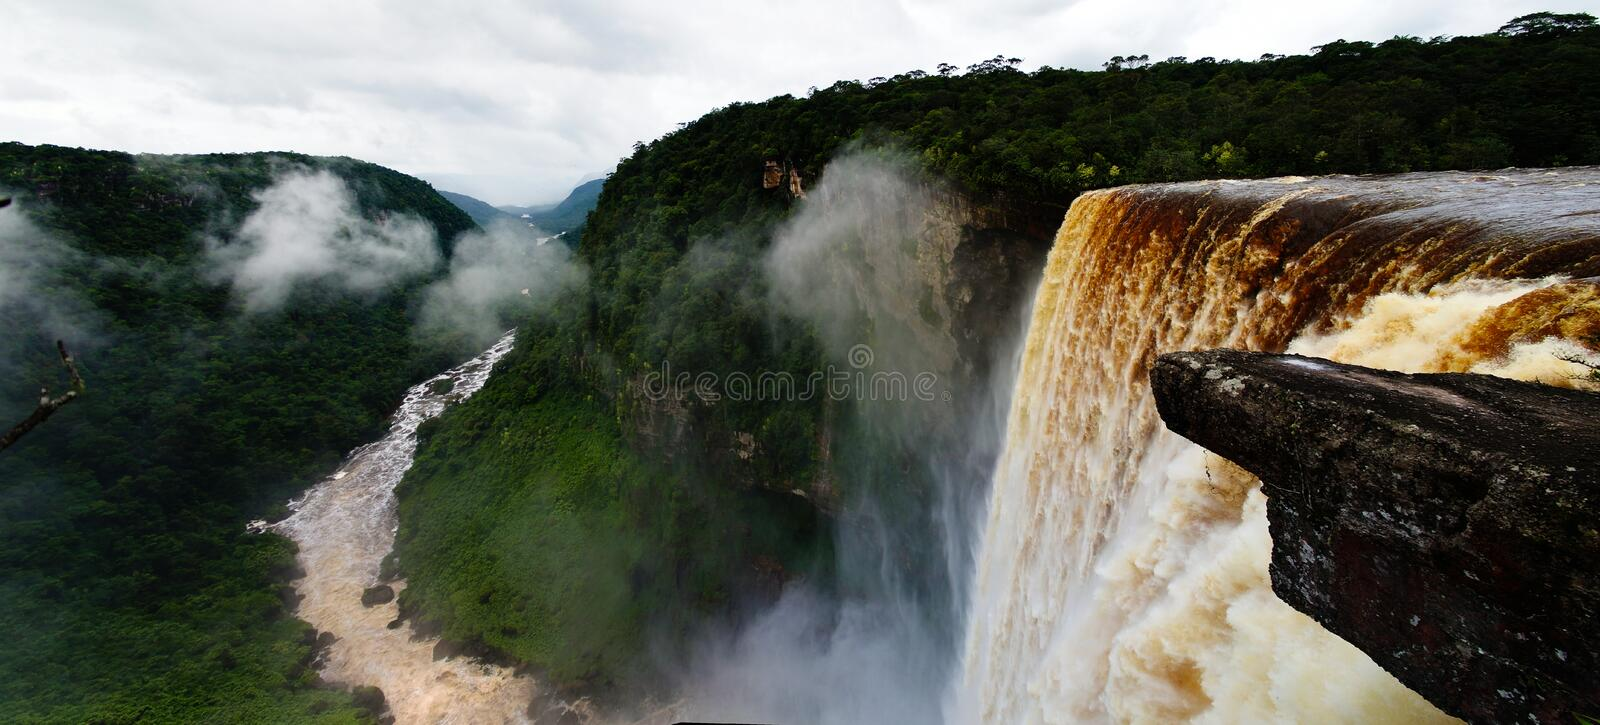 Kaieteur waterfall, one of the tallest falls in the world in potaro river Guyana. Kaieteur waterfall, one of the tallest falls in the world, potaro river Guyana royalty free stock photos